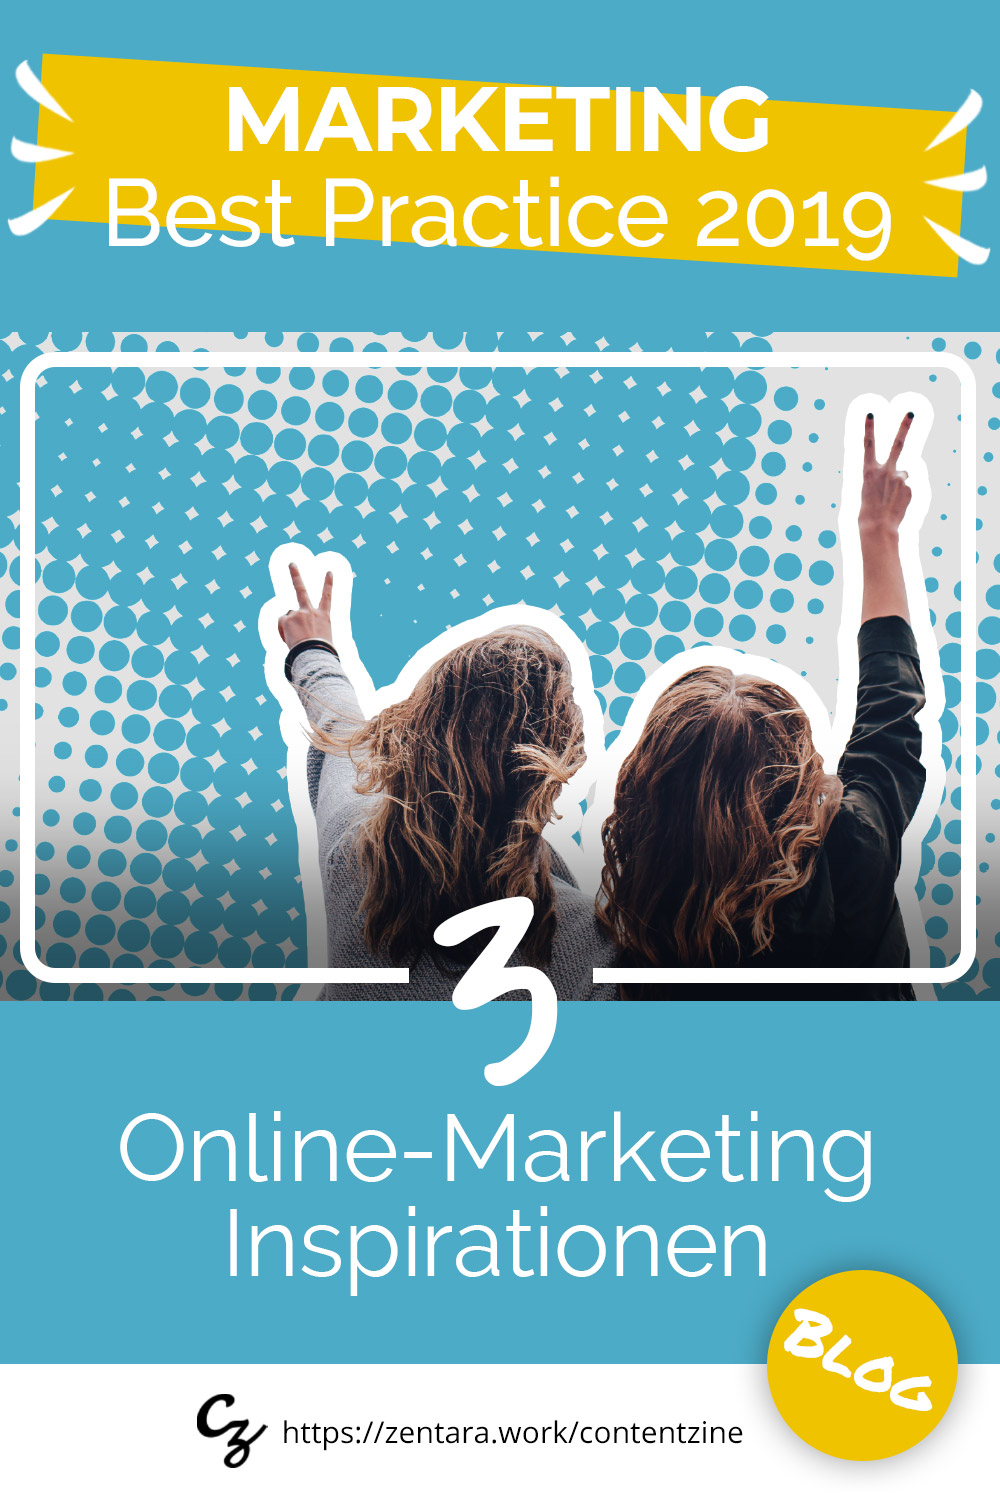 Online-Marketing Best Practice 2019: 3 inspirierende Ideen